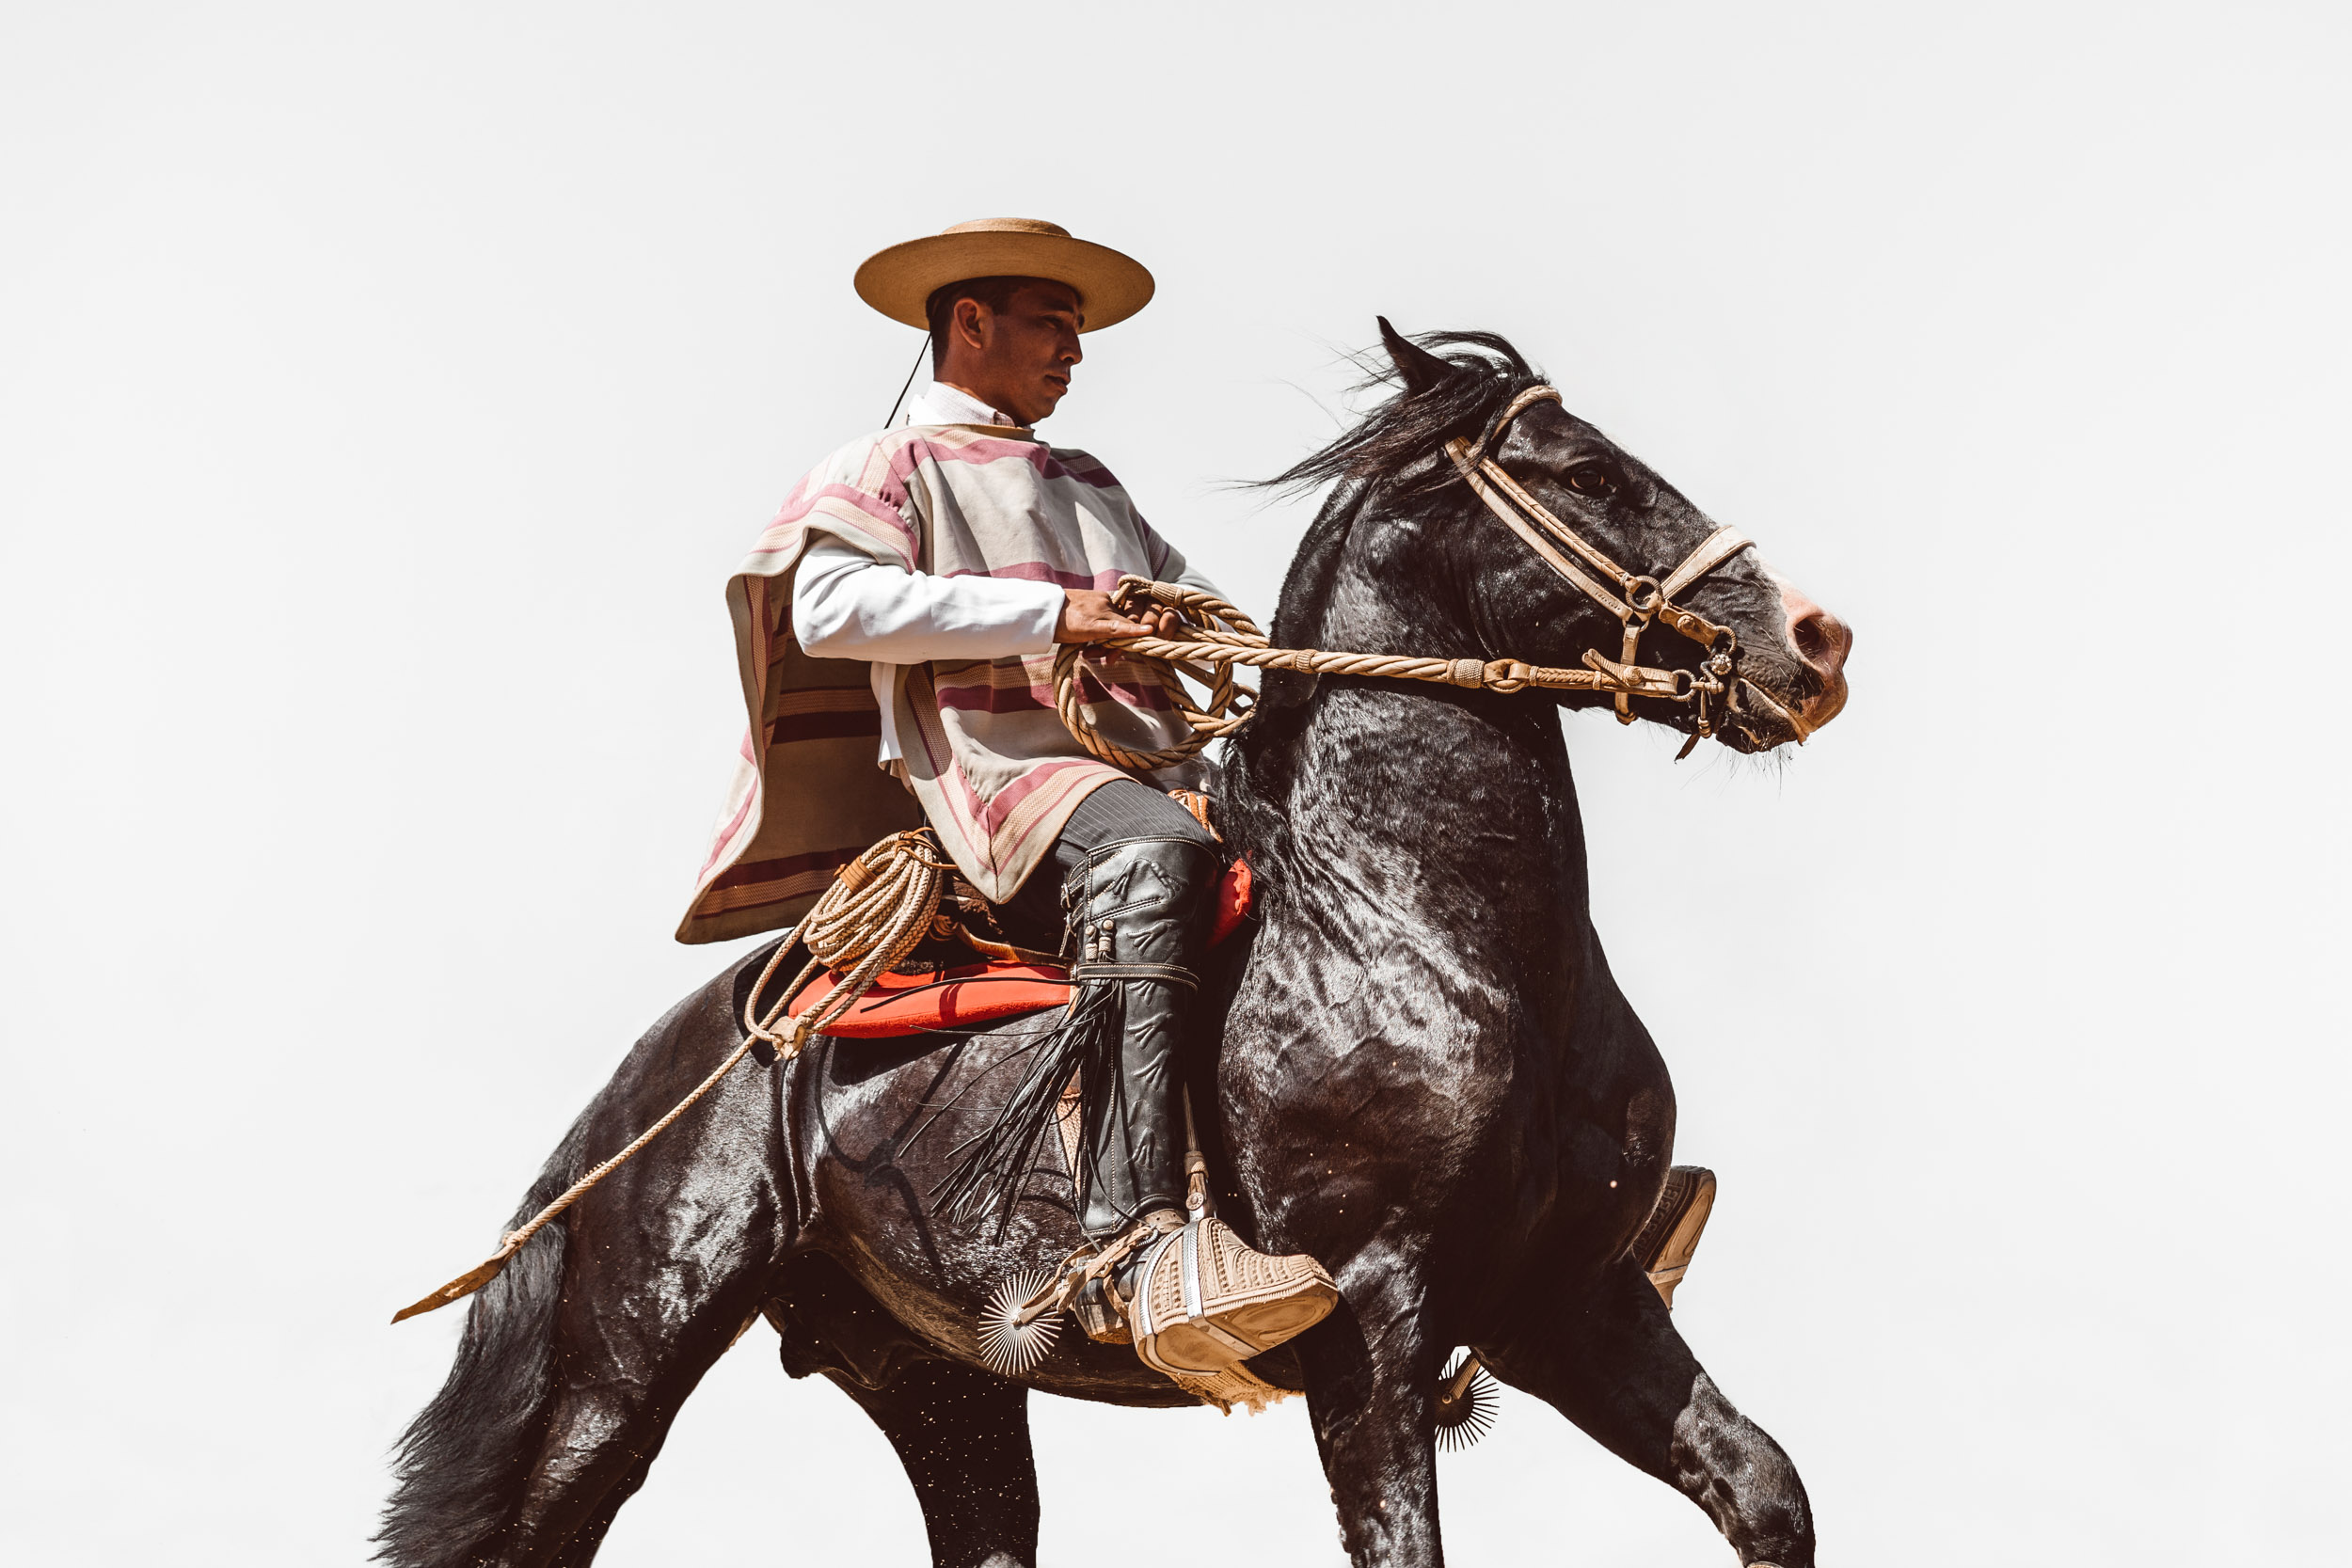 Chilean Huaso cowboy in his traditional attire riding his horse